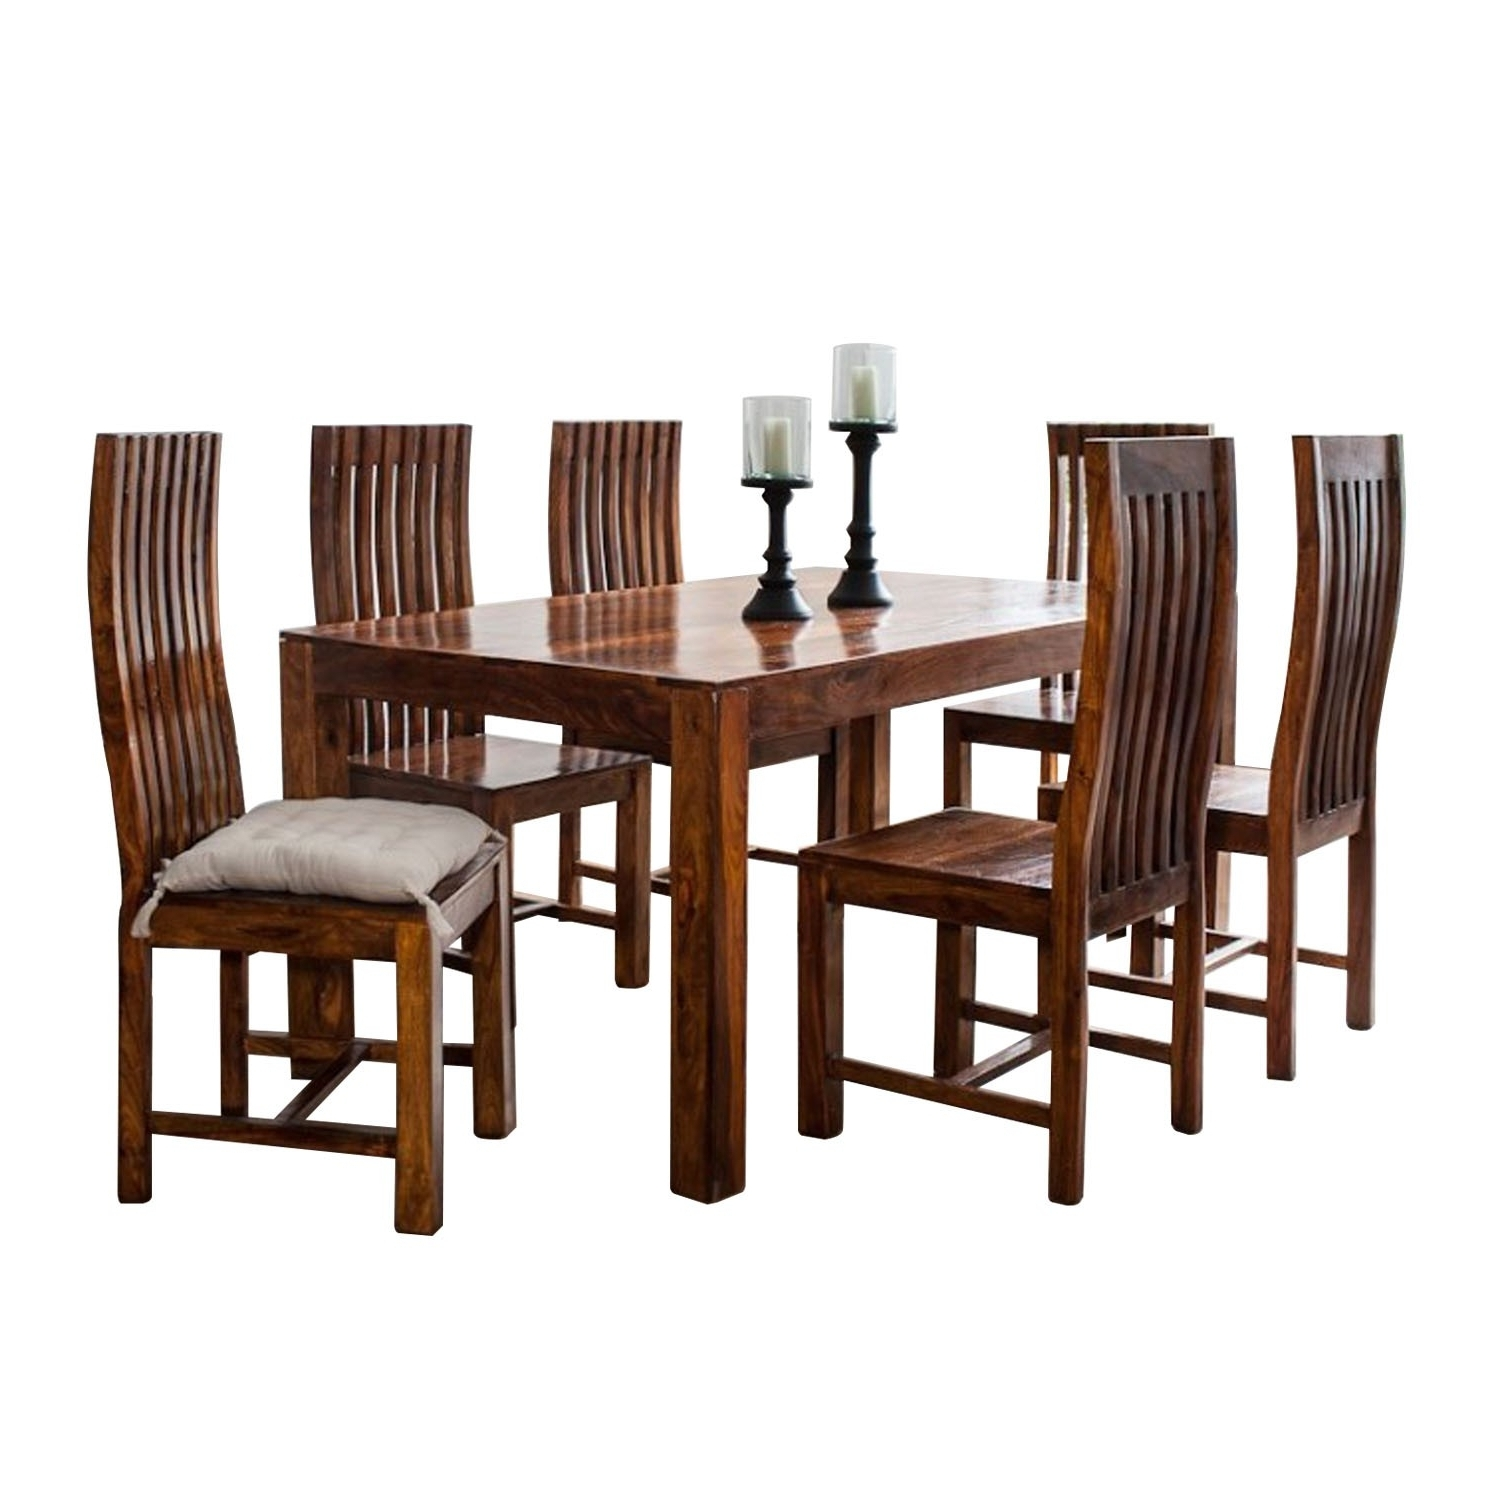 Red Dining Table Sets Intended For 2017 Sheesham Wood Dining Table Red Dining Set (View 17 of 25)